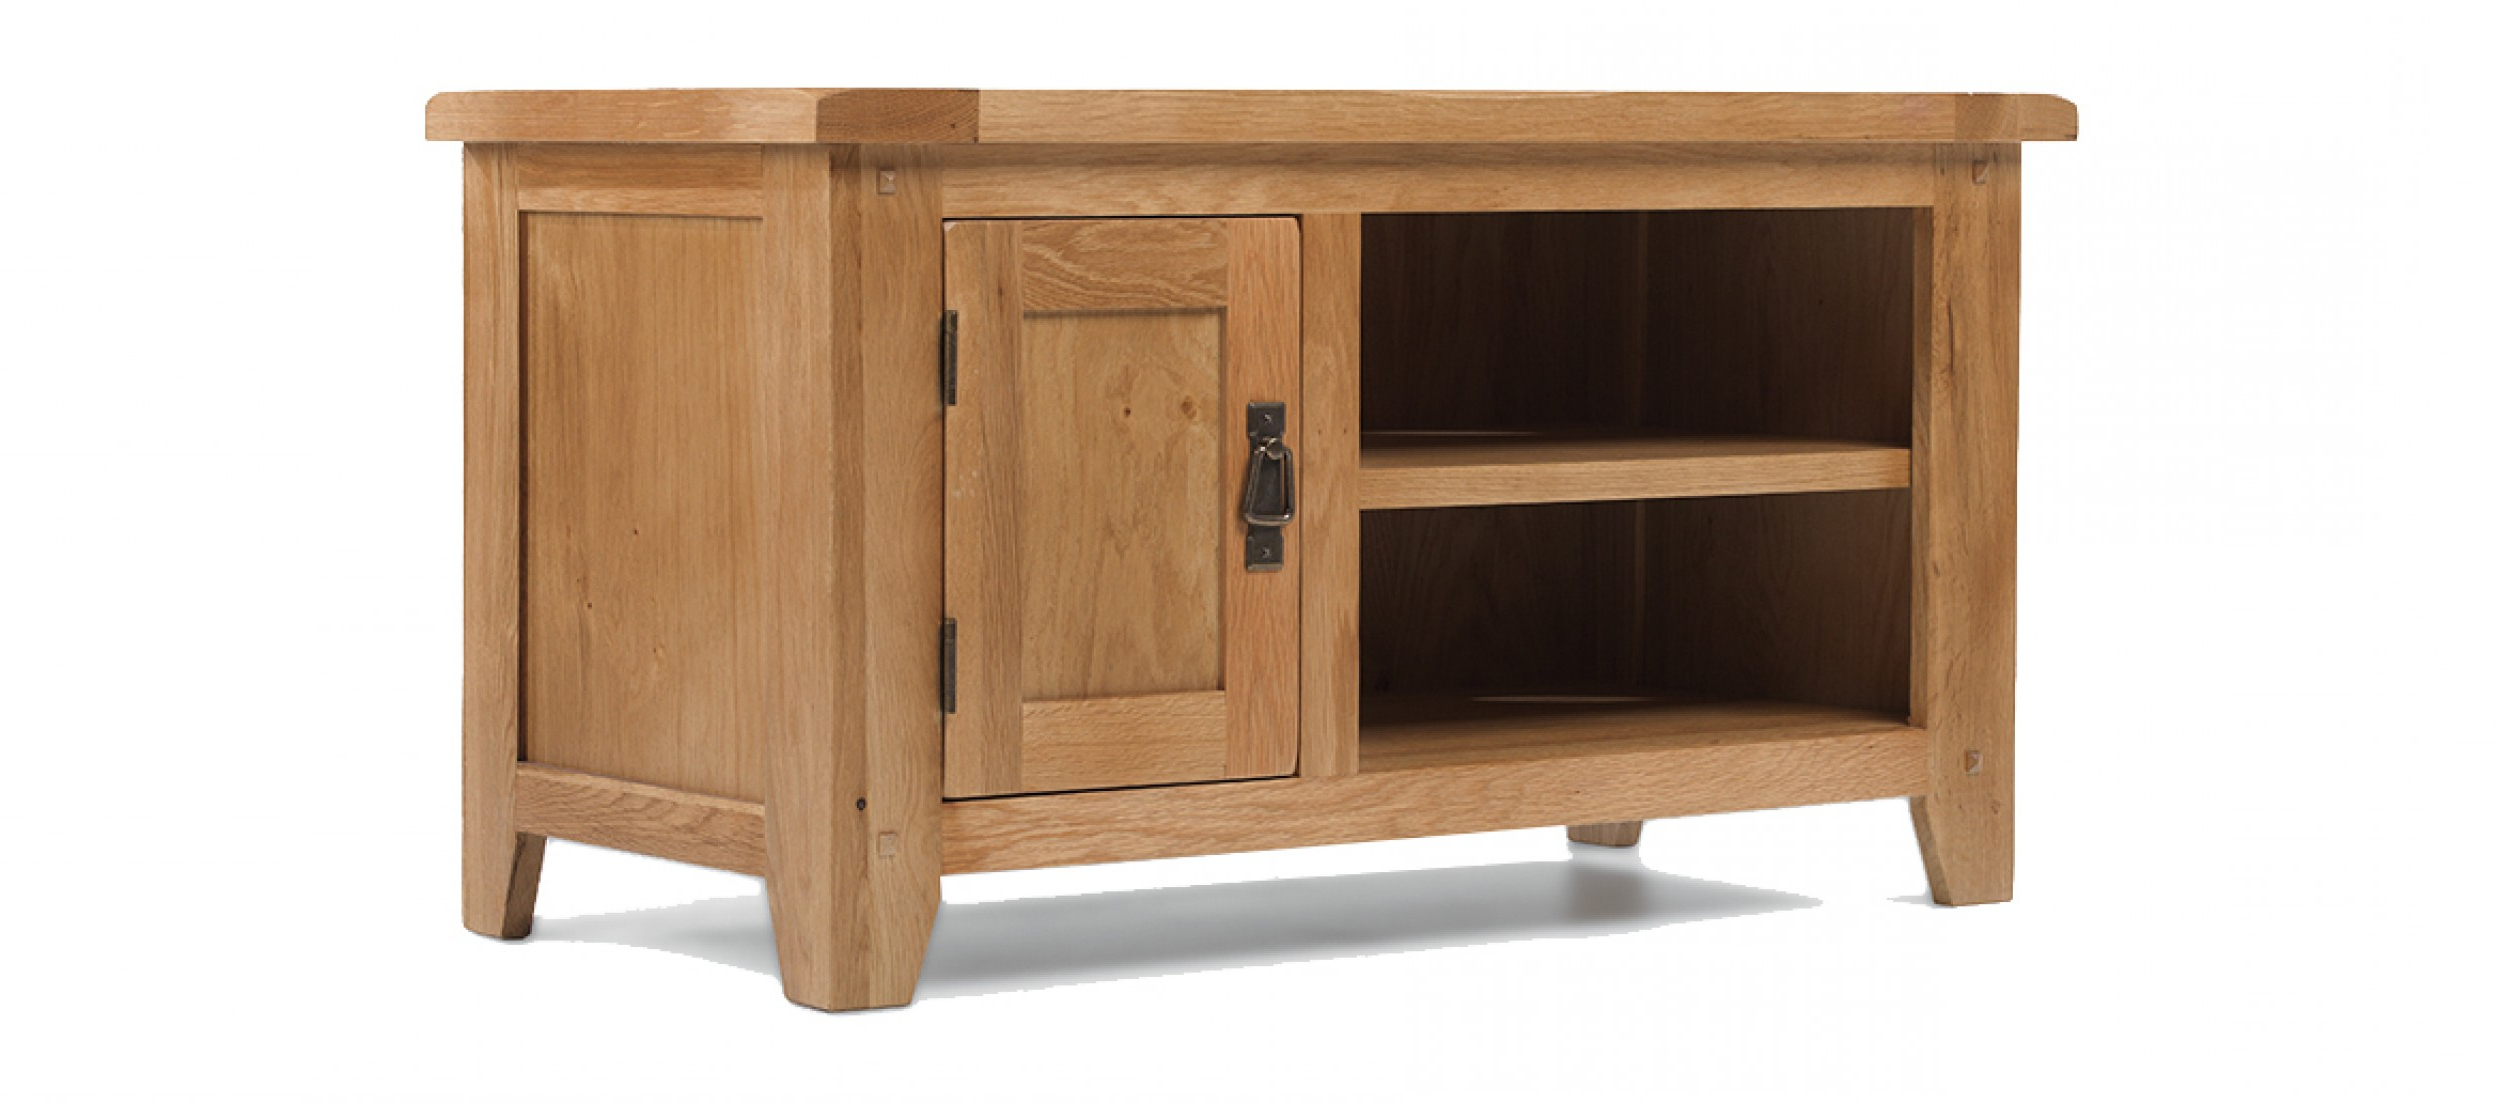 Oak Tv Cabinets With Doors Within Well Known Rustic Oak Tv Unit (Gallery 9 of 20)